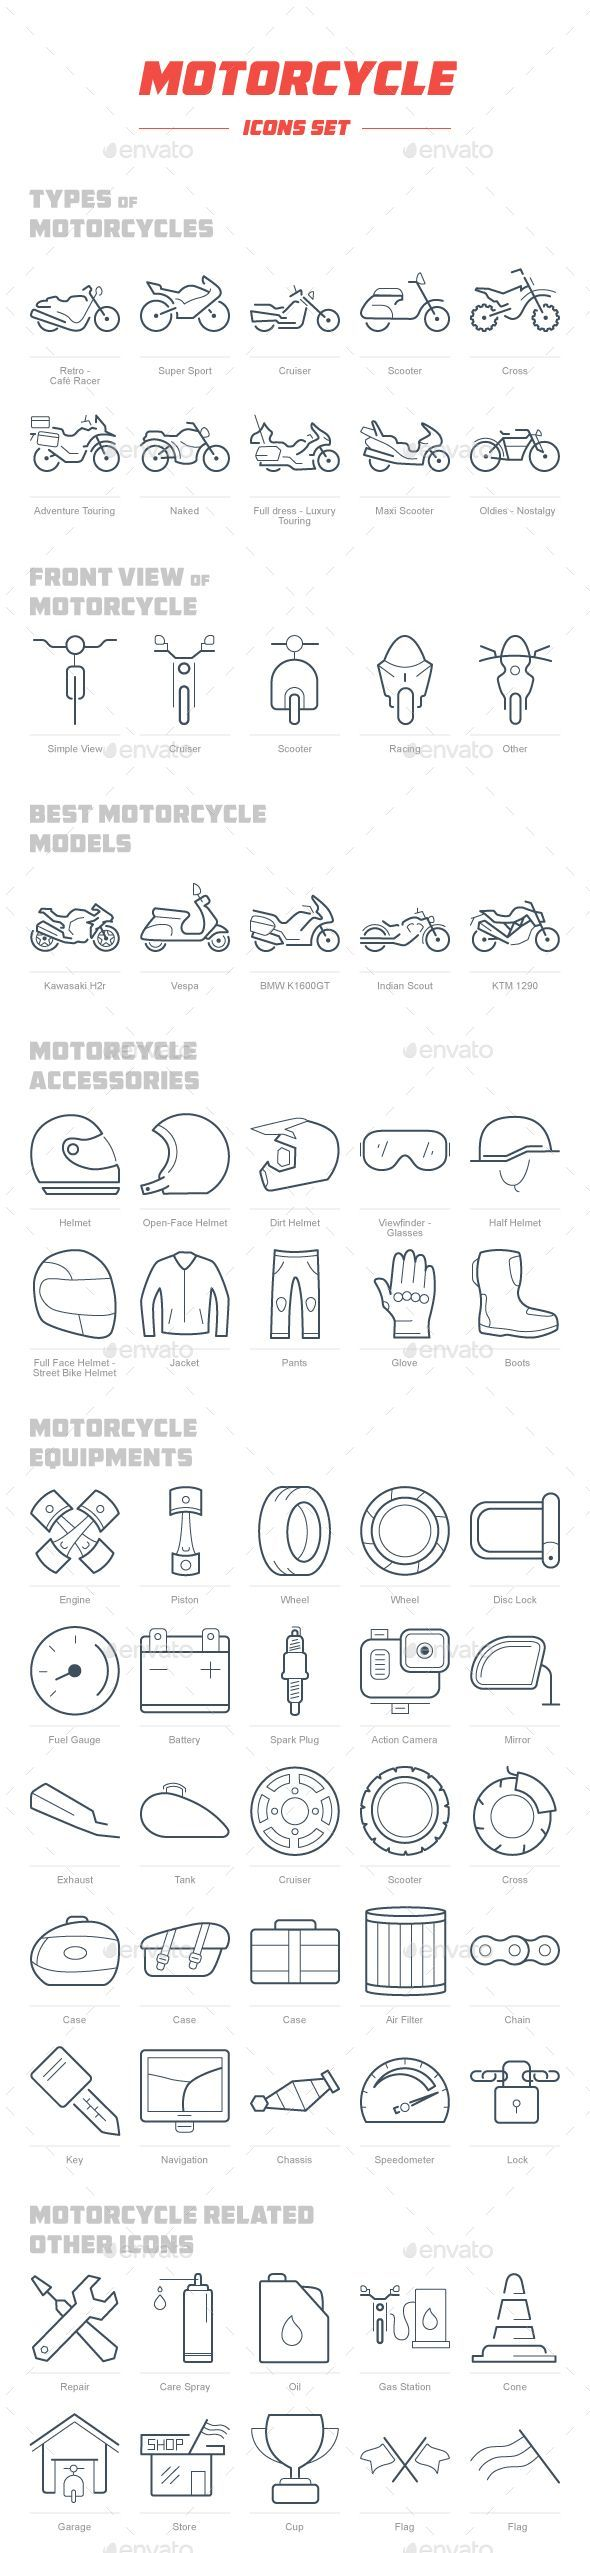 Motorcycle Icon Set  — PSD Template #cruiser #Best Motorcycle Models • Download ➝ https://graphicriver.net/item/motorcycle-icon-set/18365362?ref=pxcr #Motorcycles